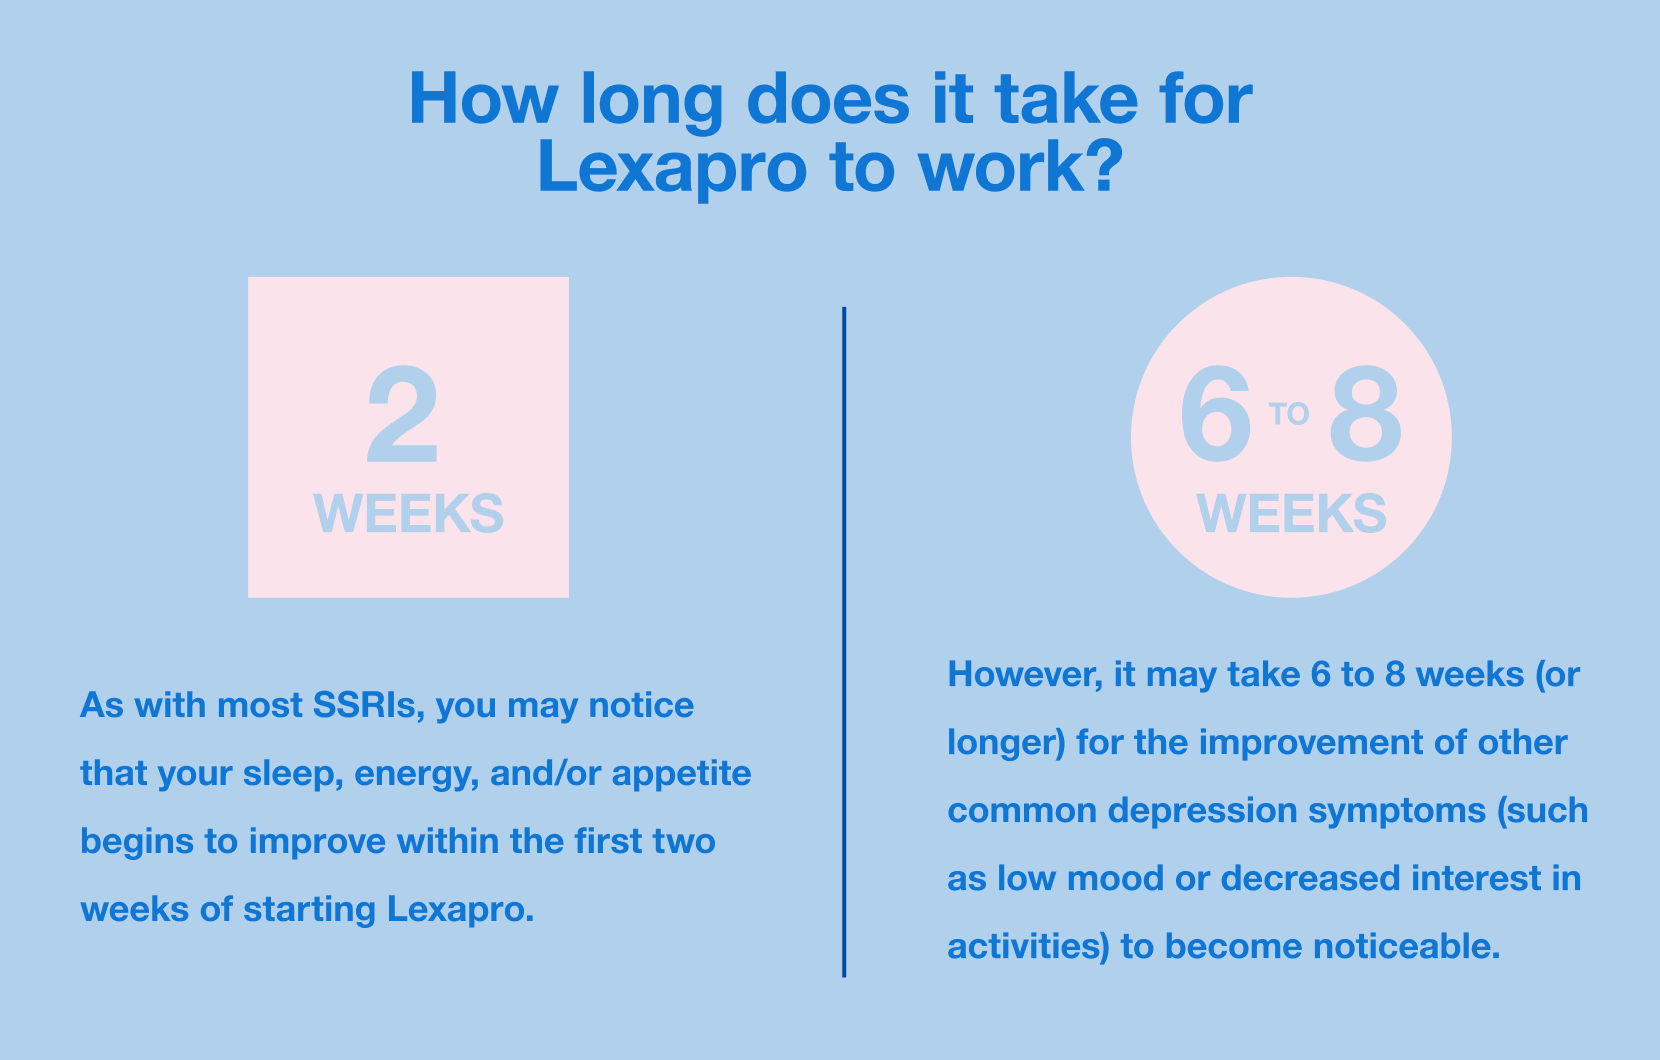 How long does it take for Lexapro to work?